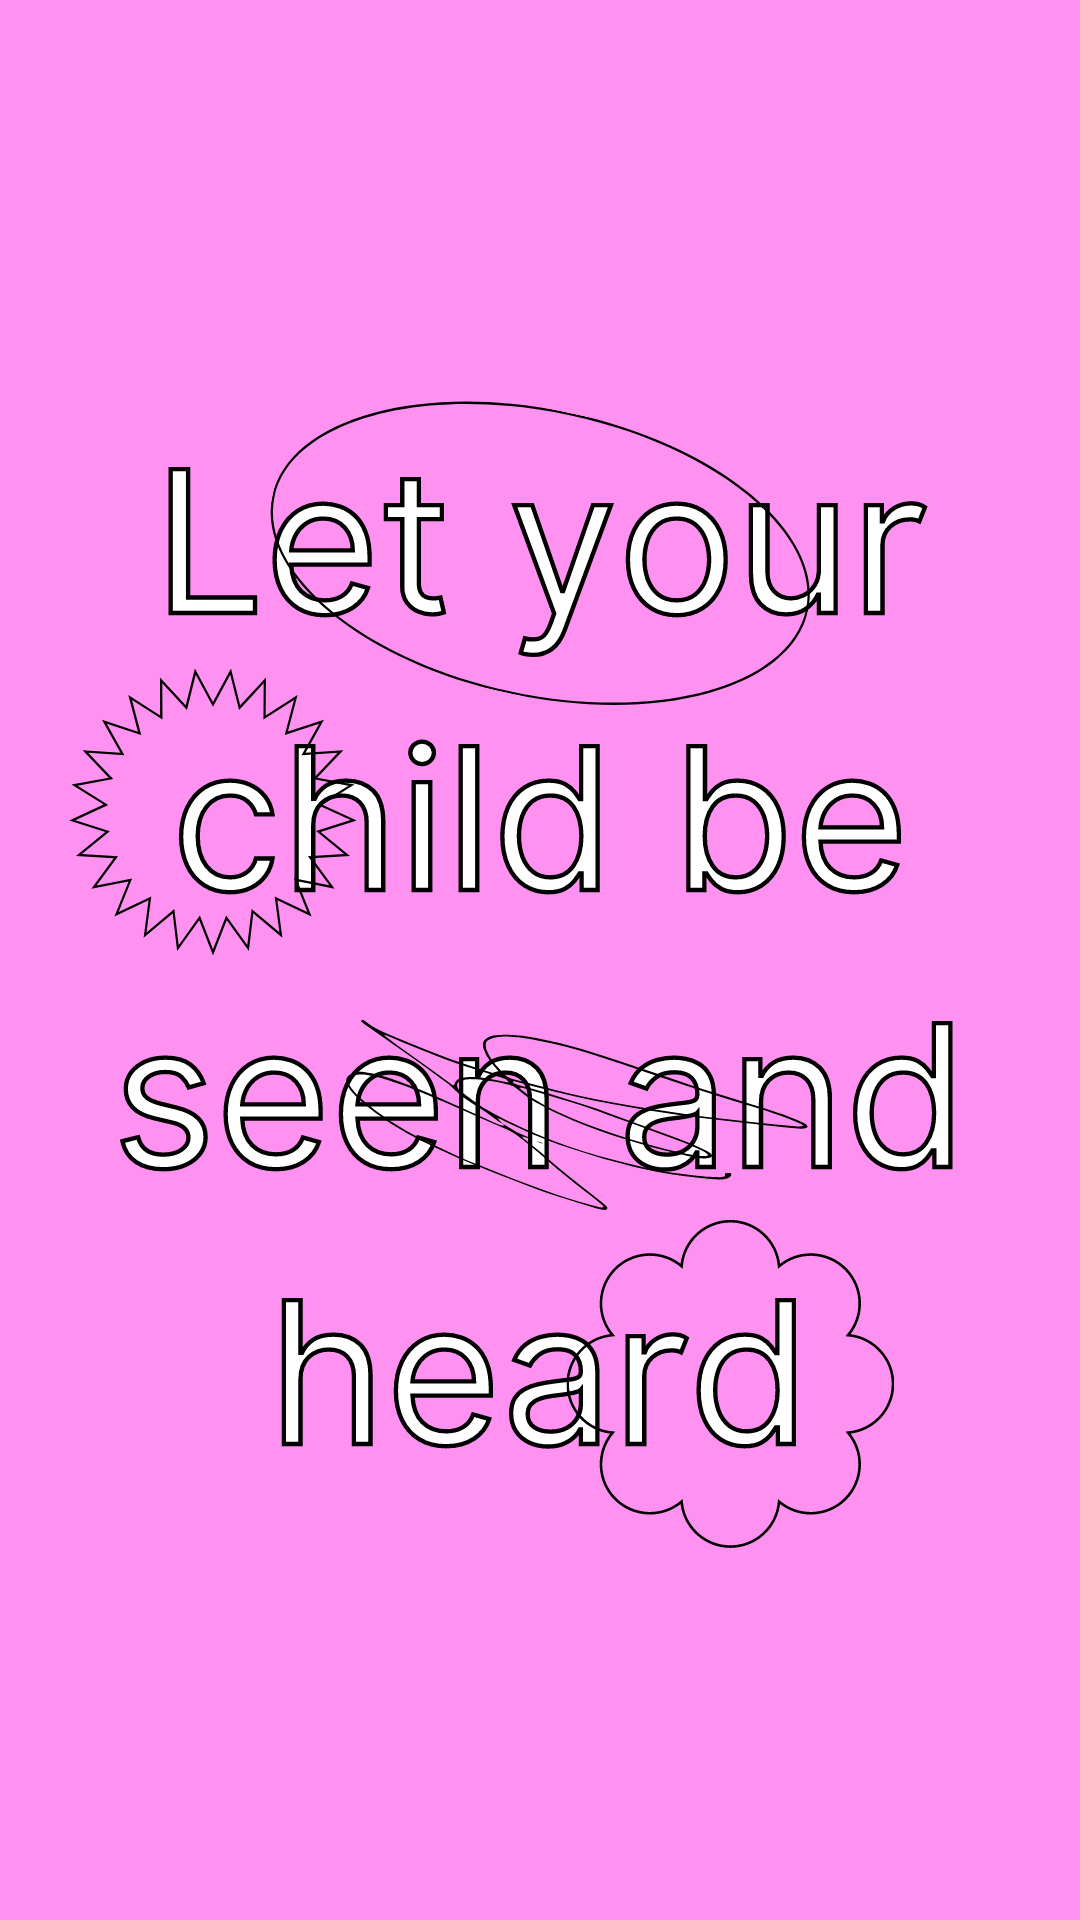 let your child be seen and heard